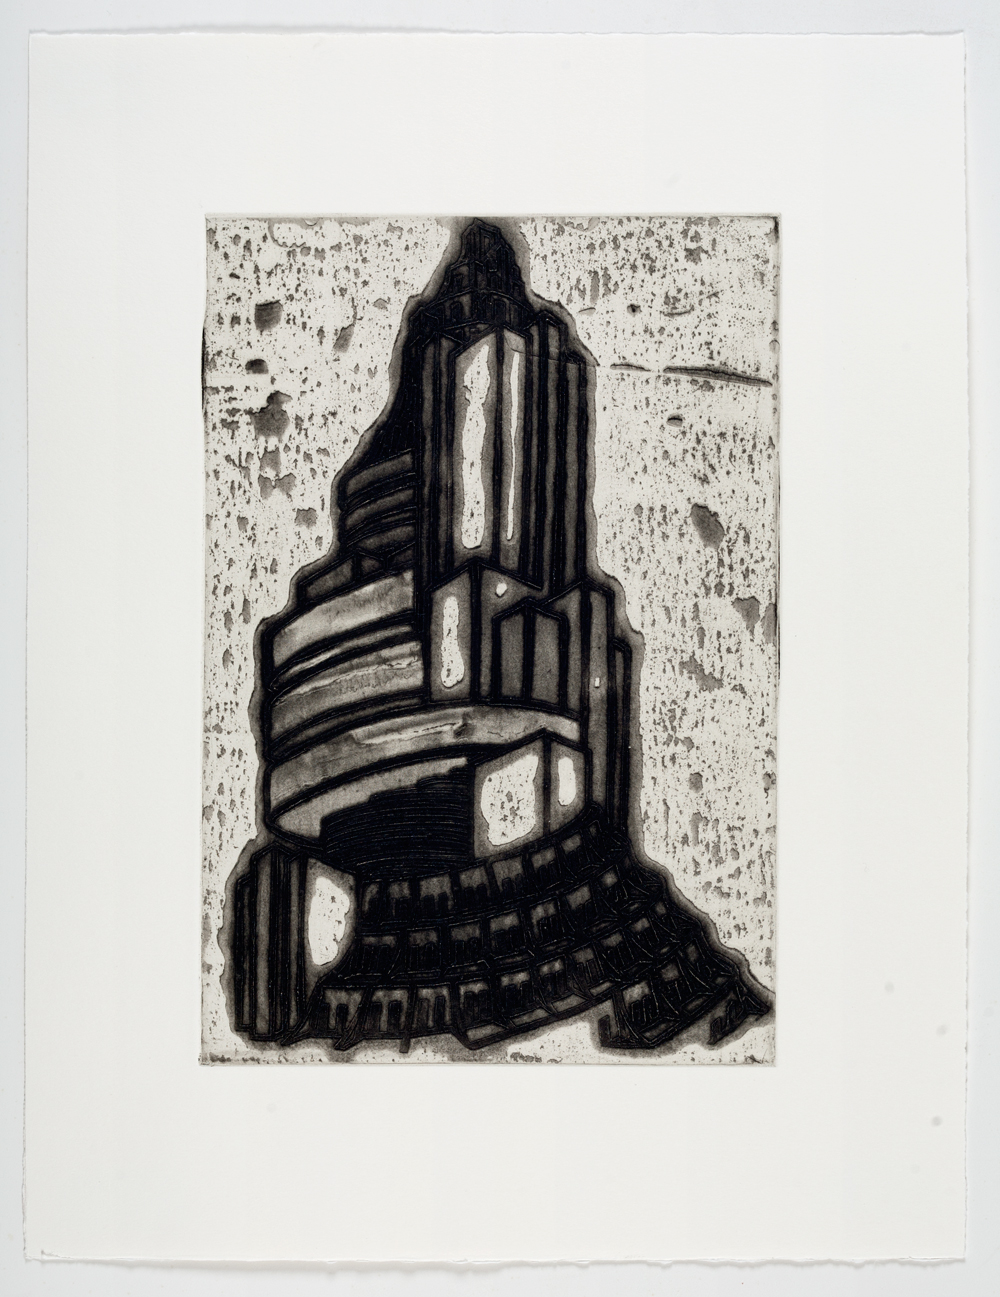 """Ideal Structures for a Dubious Future (Spiral Tower)  2012; Explosive intaglio on paper; 16 3/4"""" x 12""""; Self published; Edition of 12"""